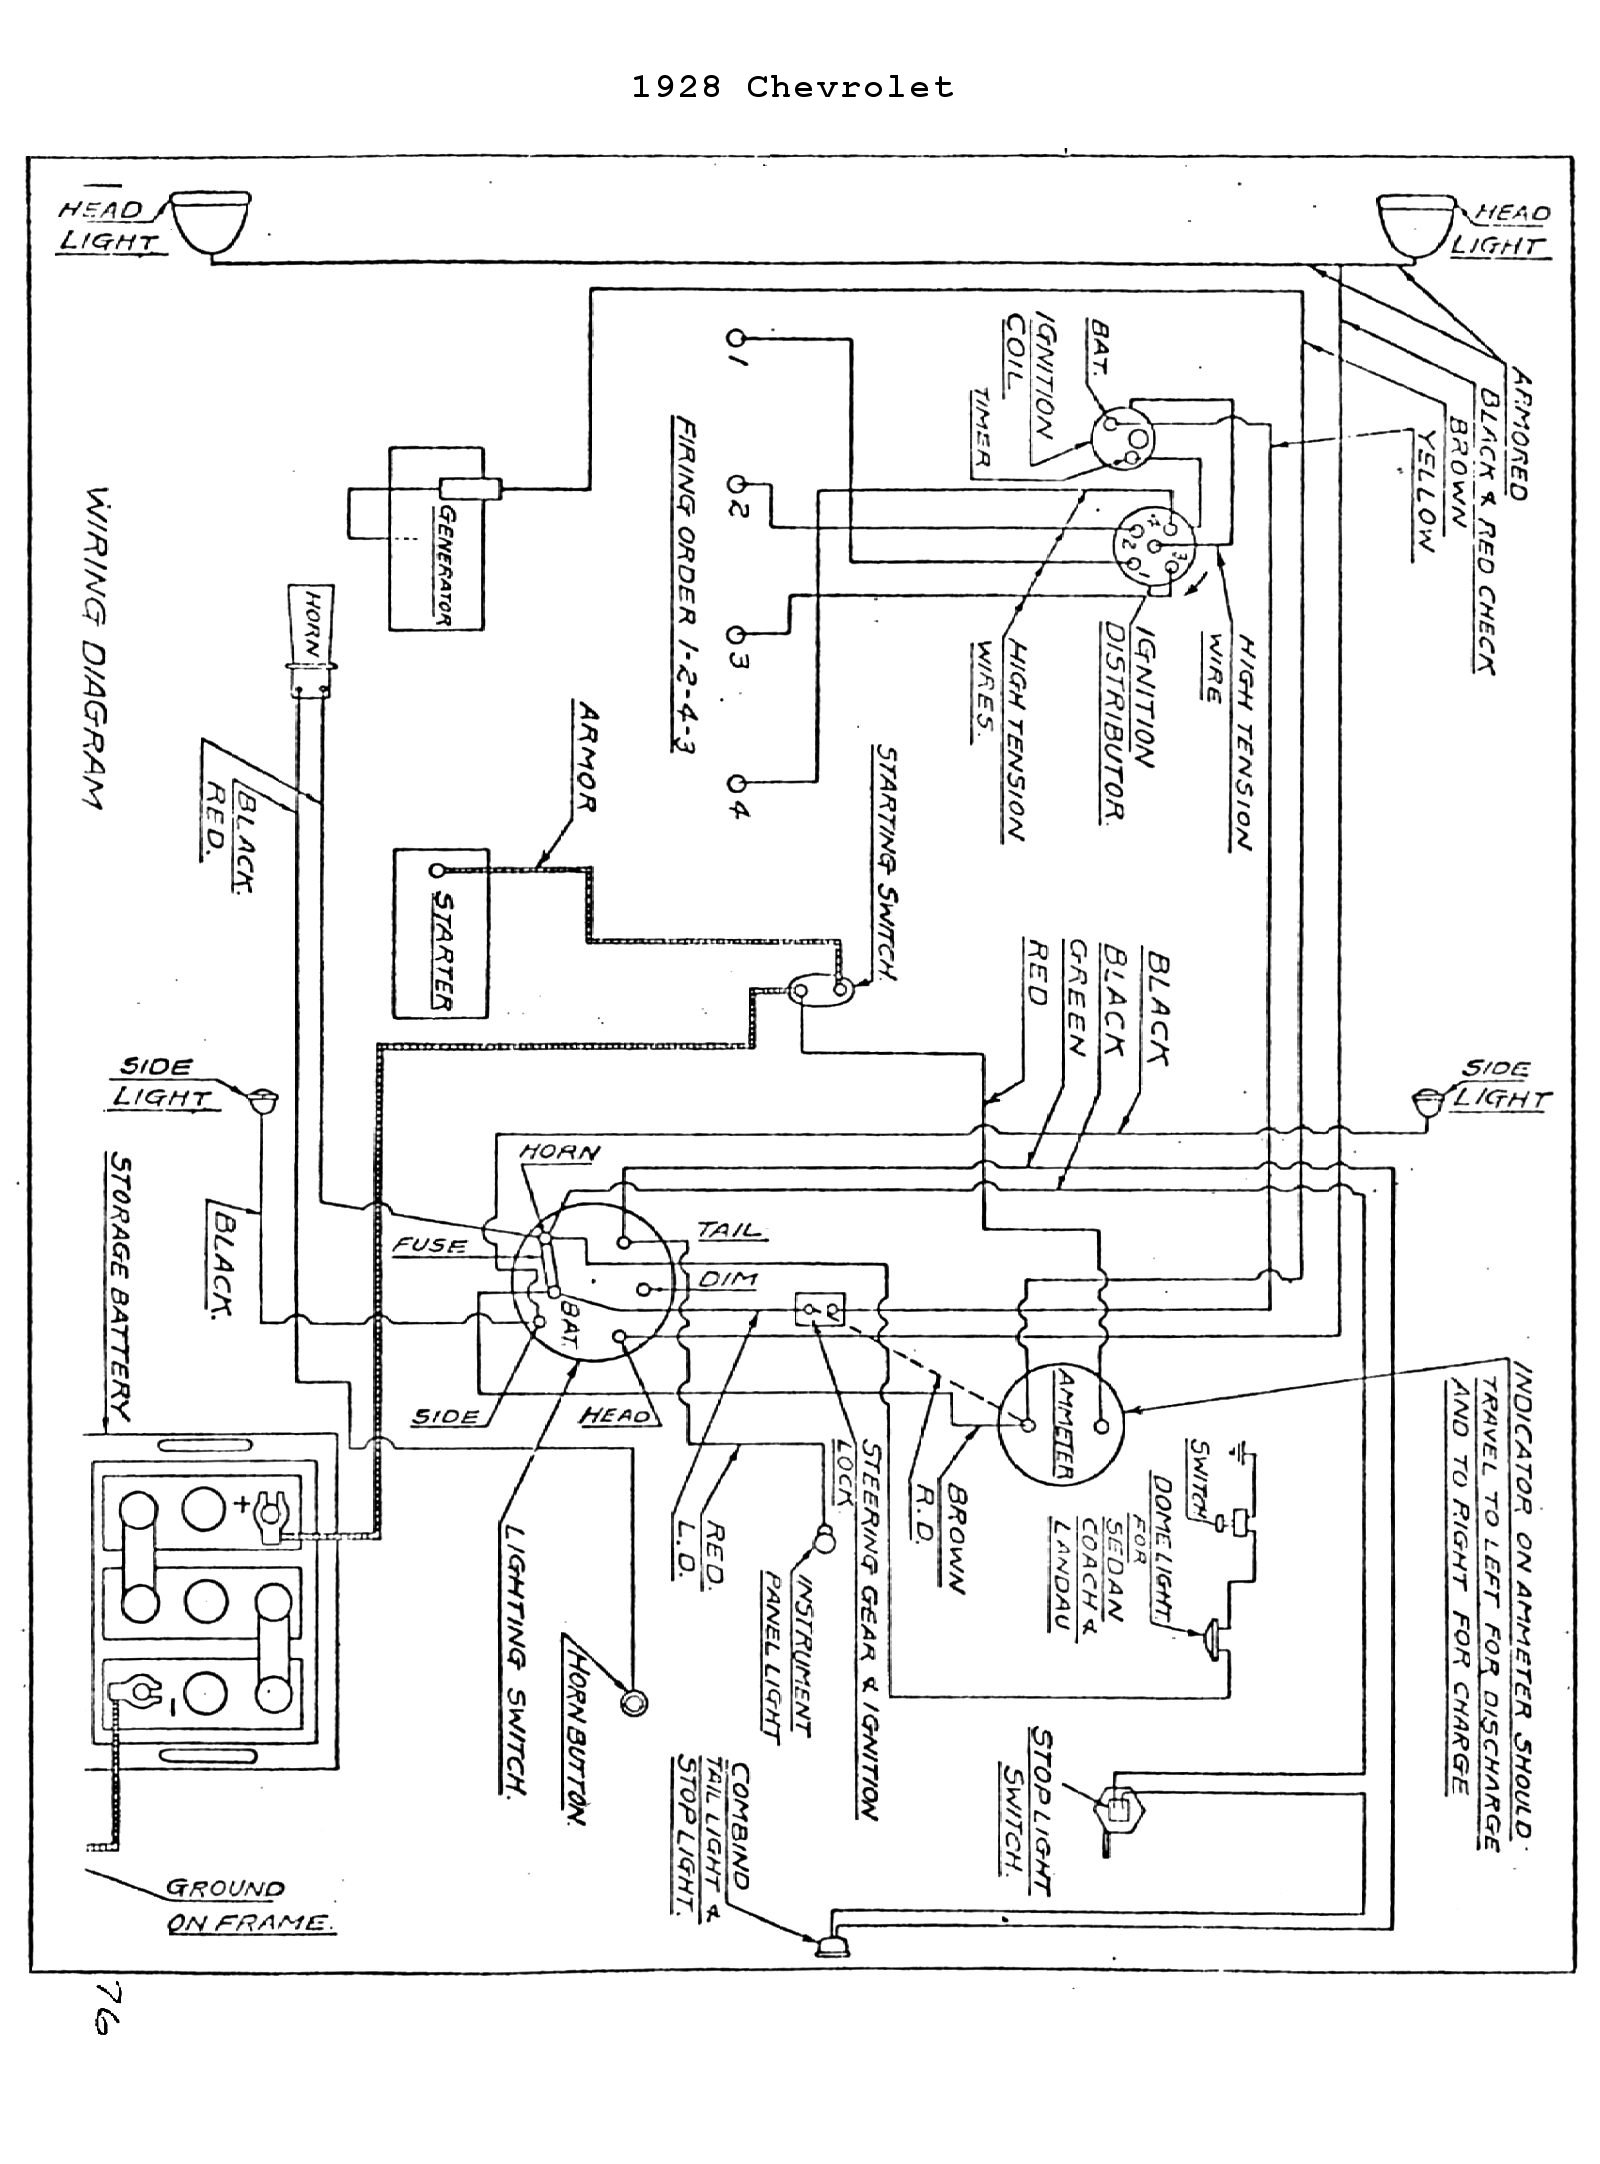 1932 chevy truck wiring diagram schematic 65 chevy truck wiring diagram